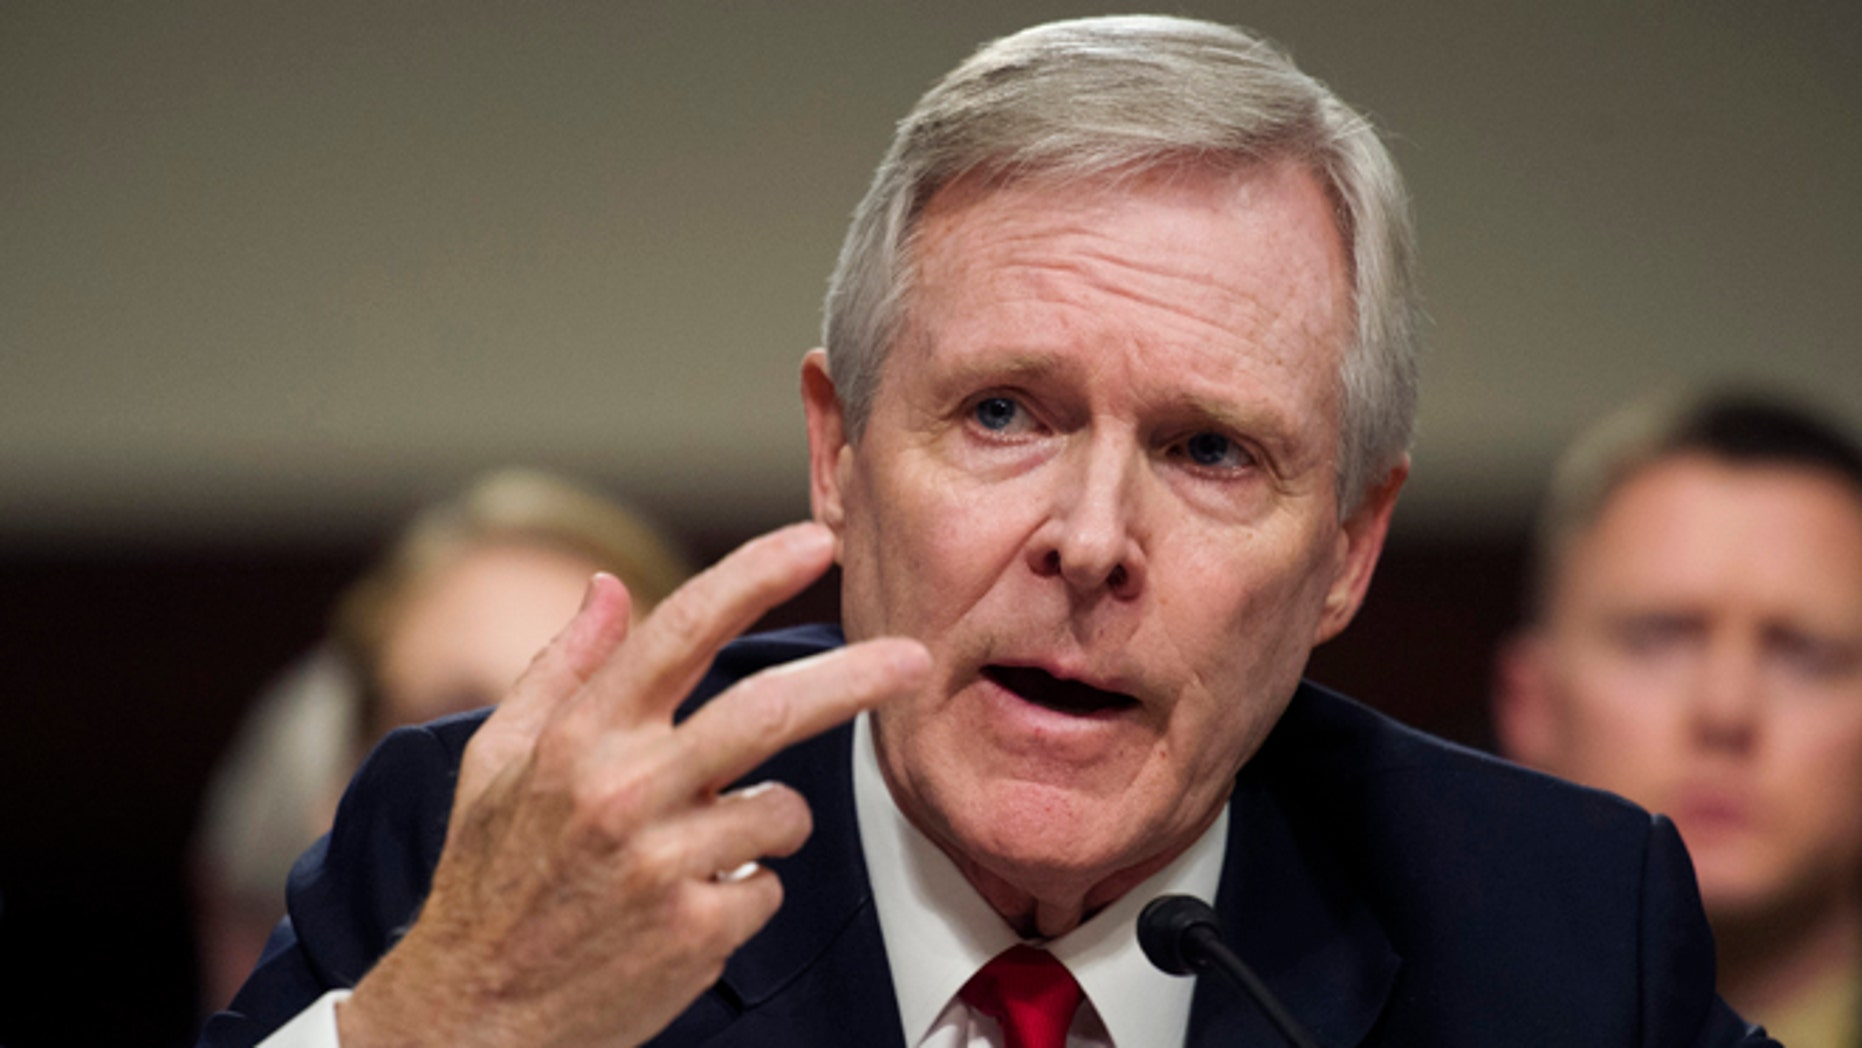 Navy Secretary Ray Mabus Jr. gestures while testifying on Capitol Hill in Washington, Tuesday, Feb. 2, 2016, before the Senate Armed Services Committee hearing to examine the implementation of the decision to open all ground combat units to women.  (AP Photo/Cliff Owen)